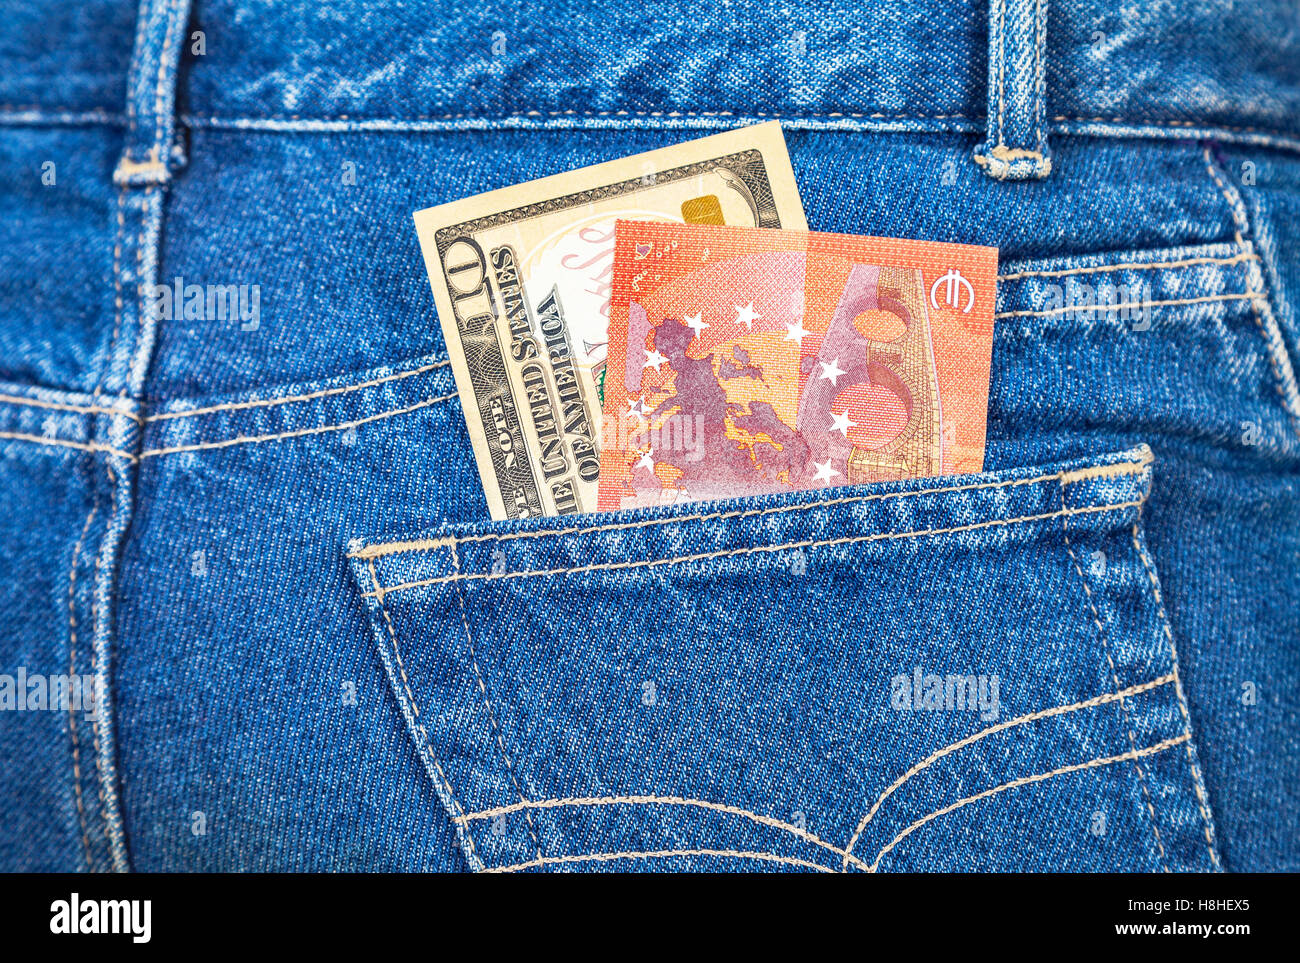 Ten american dollars and ten euro notes sticking out of the blue jeans pocket - Stock Image